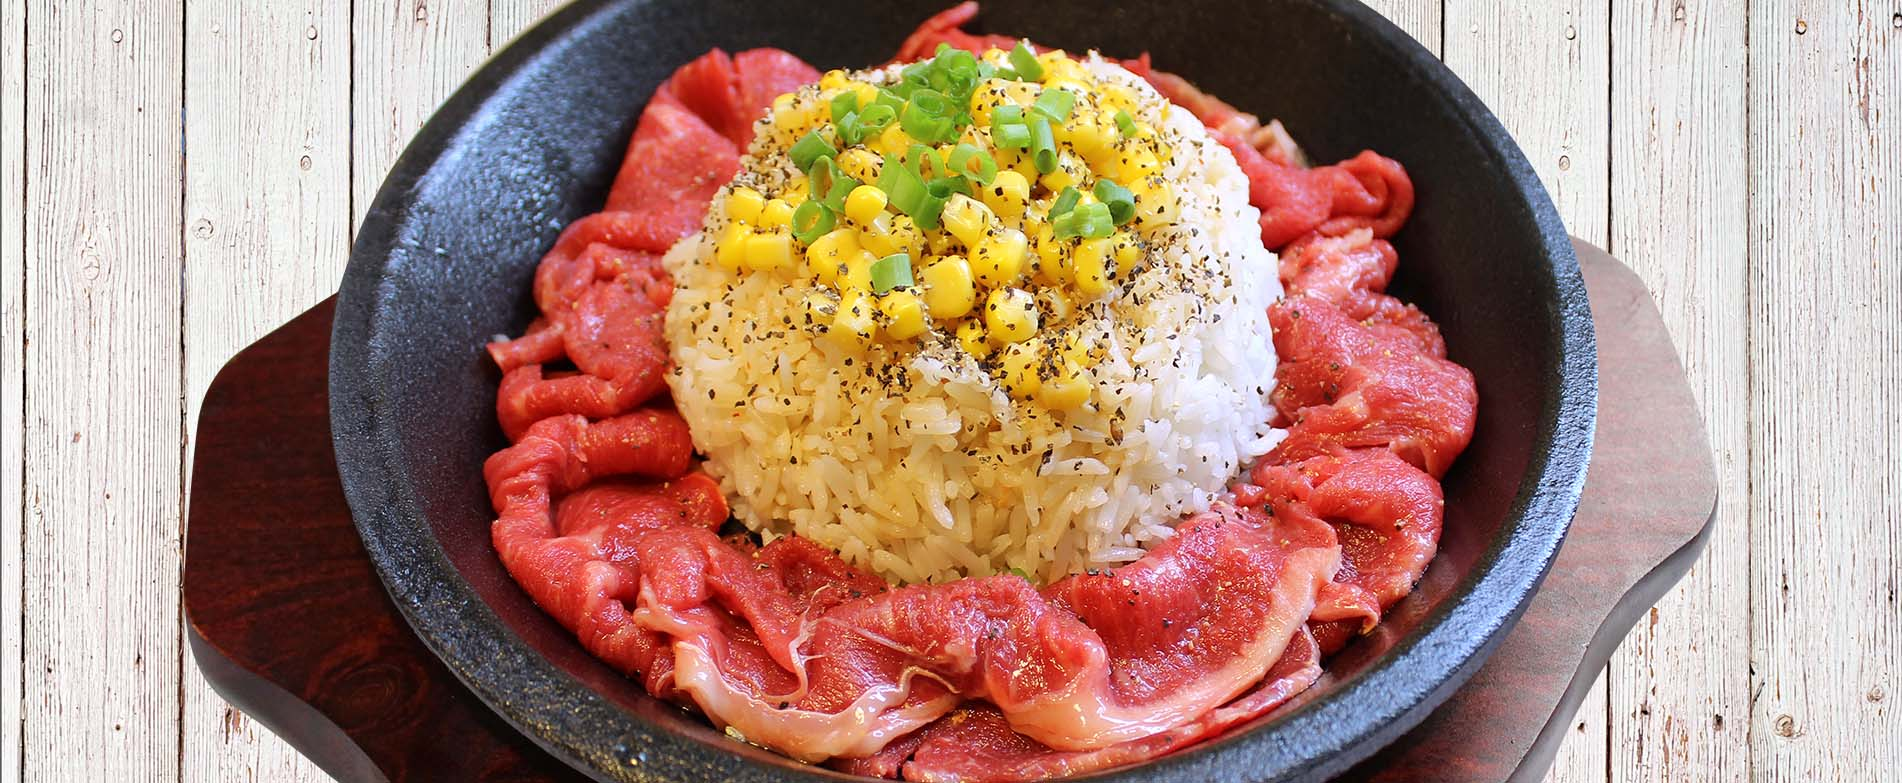 korean-food-beef-rice